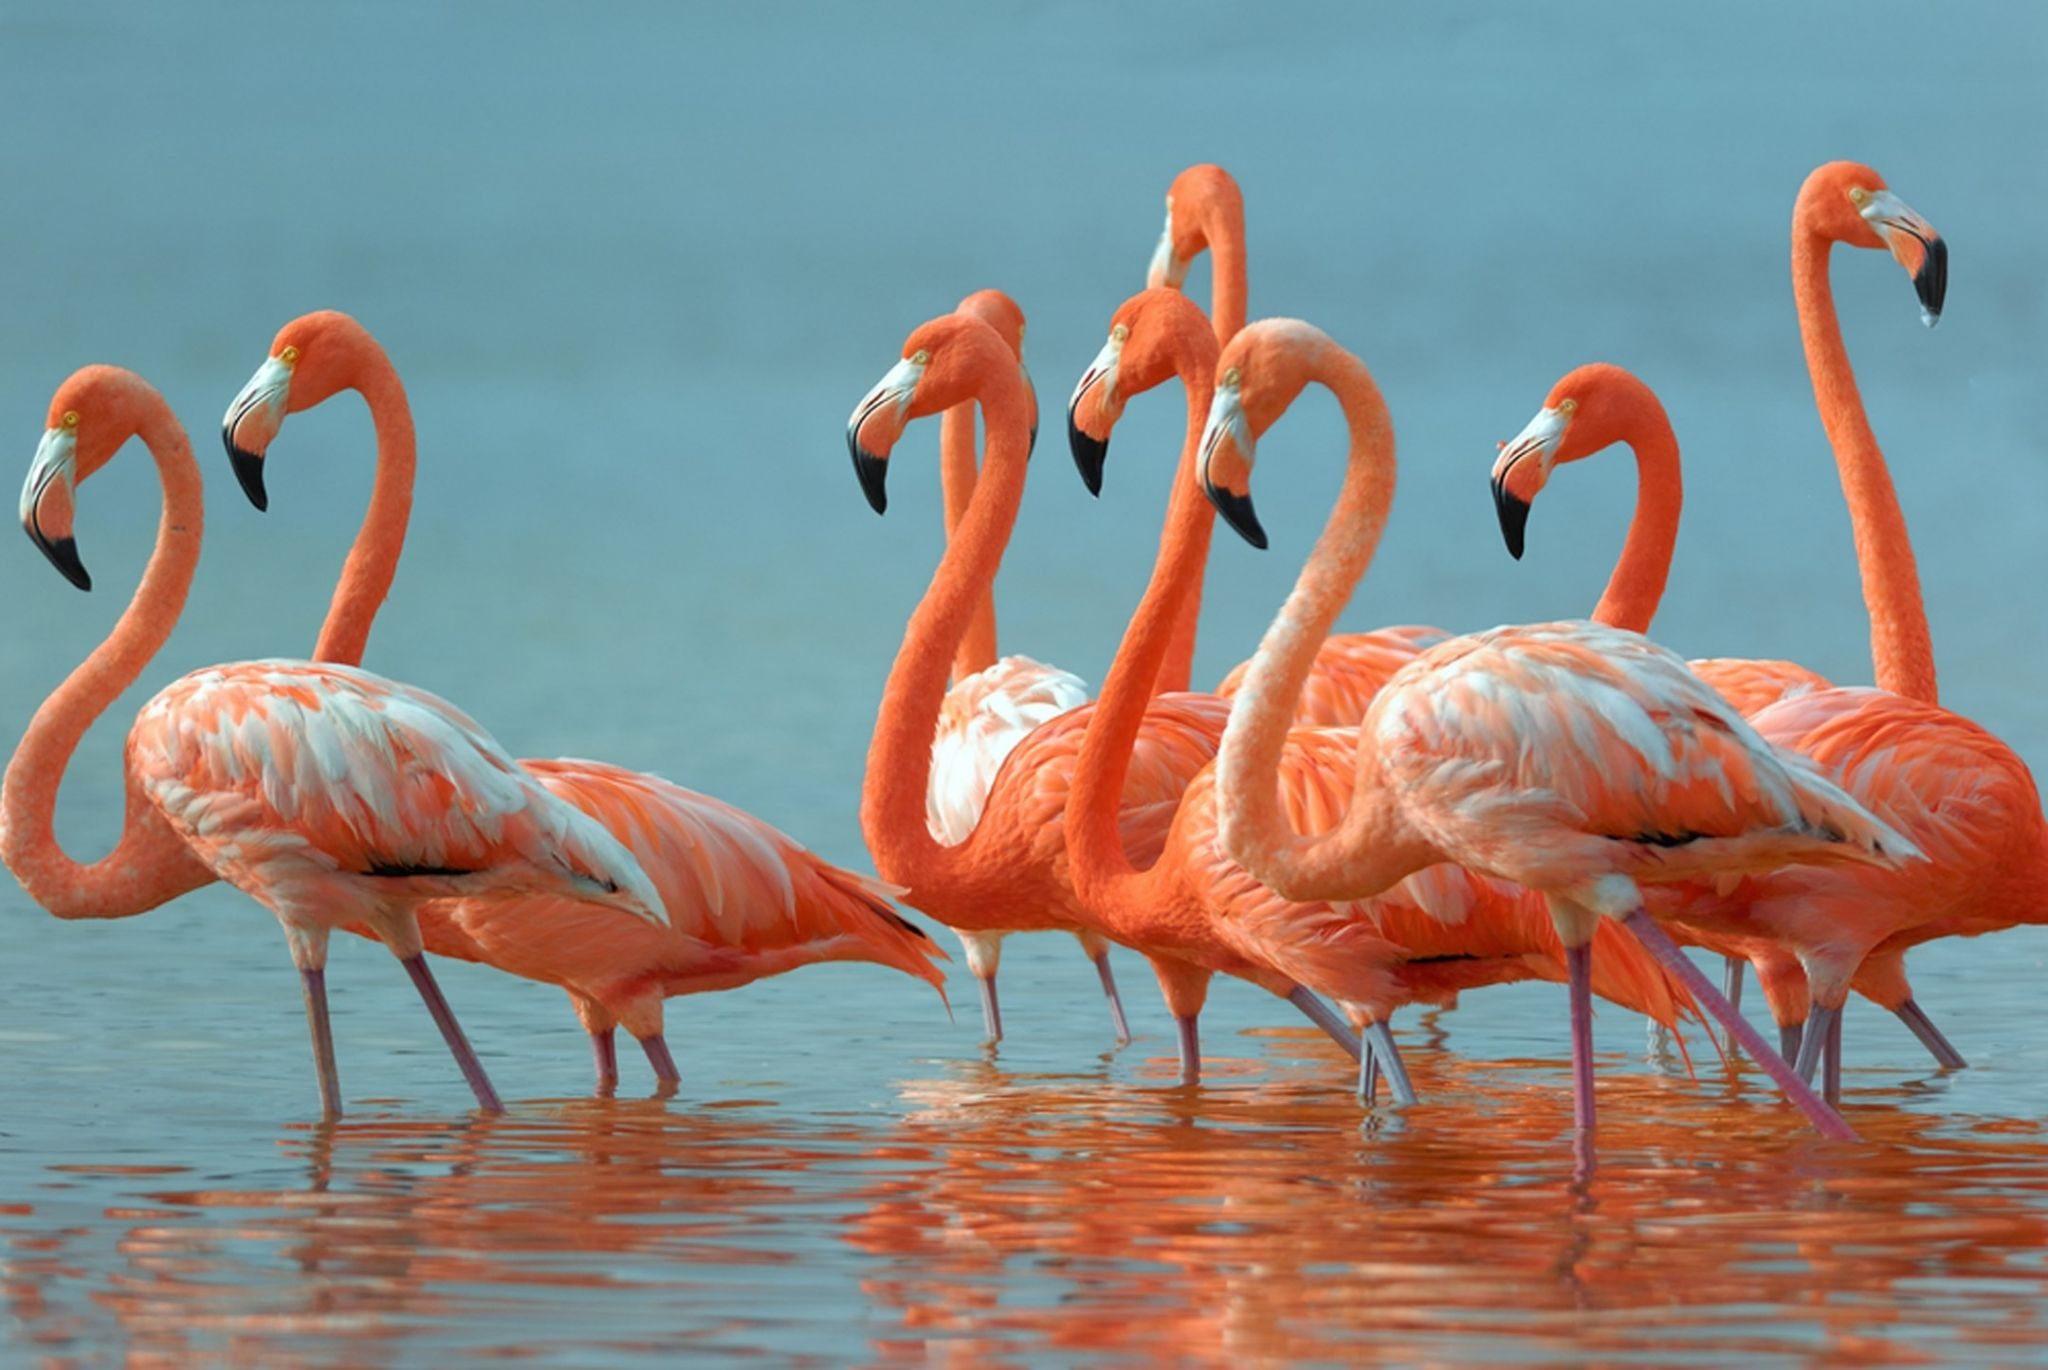 flamingo desktop wallpaper hd wallpapers Flamingo